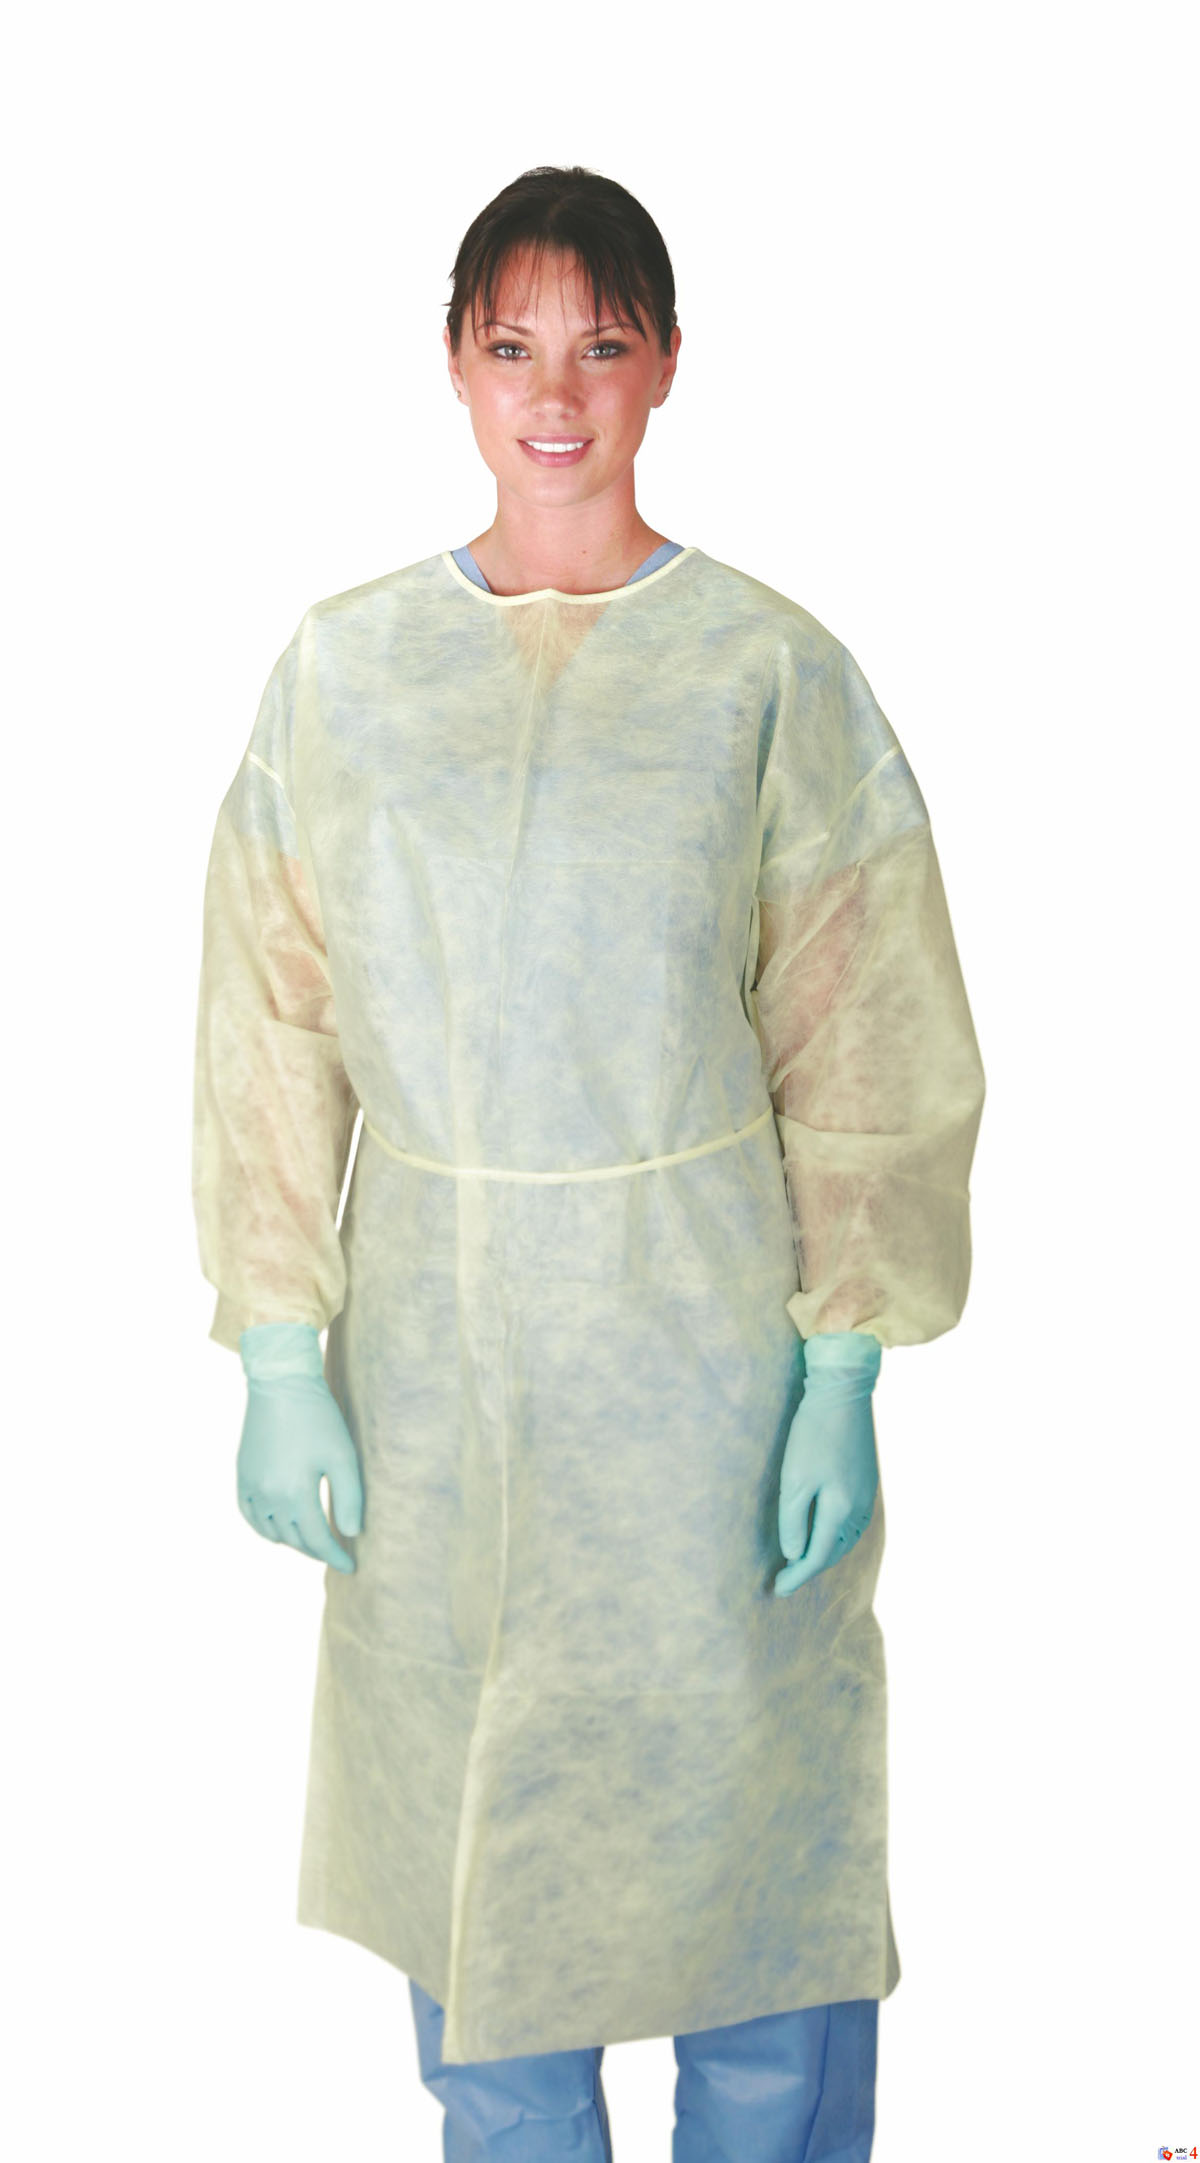 Polypropylene Isolation Gown | AvaCare Medical